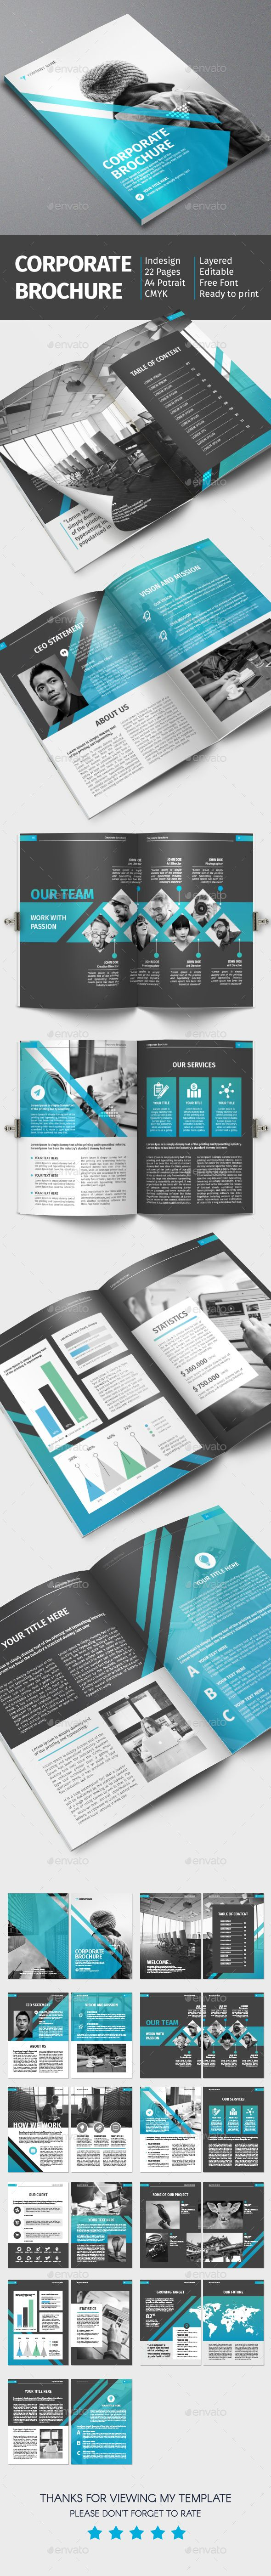 Corporate Brochure Template InDesign INDD. Download here: http://graphicriver.net/item/corporate-brochure/15304194?ref=ksioks